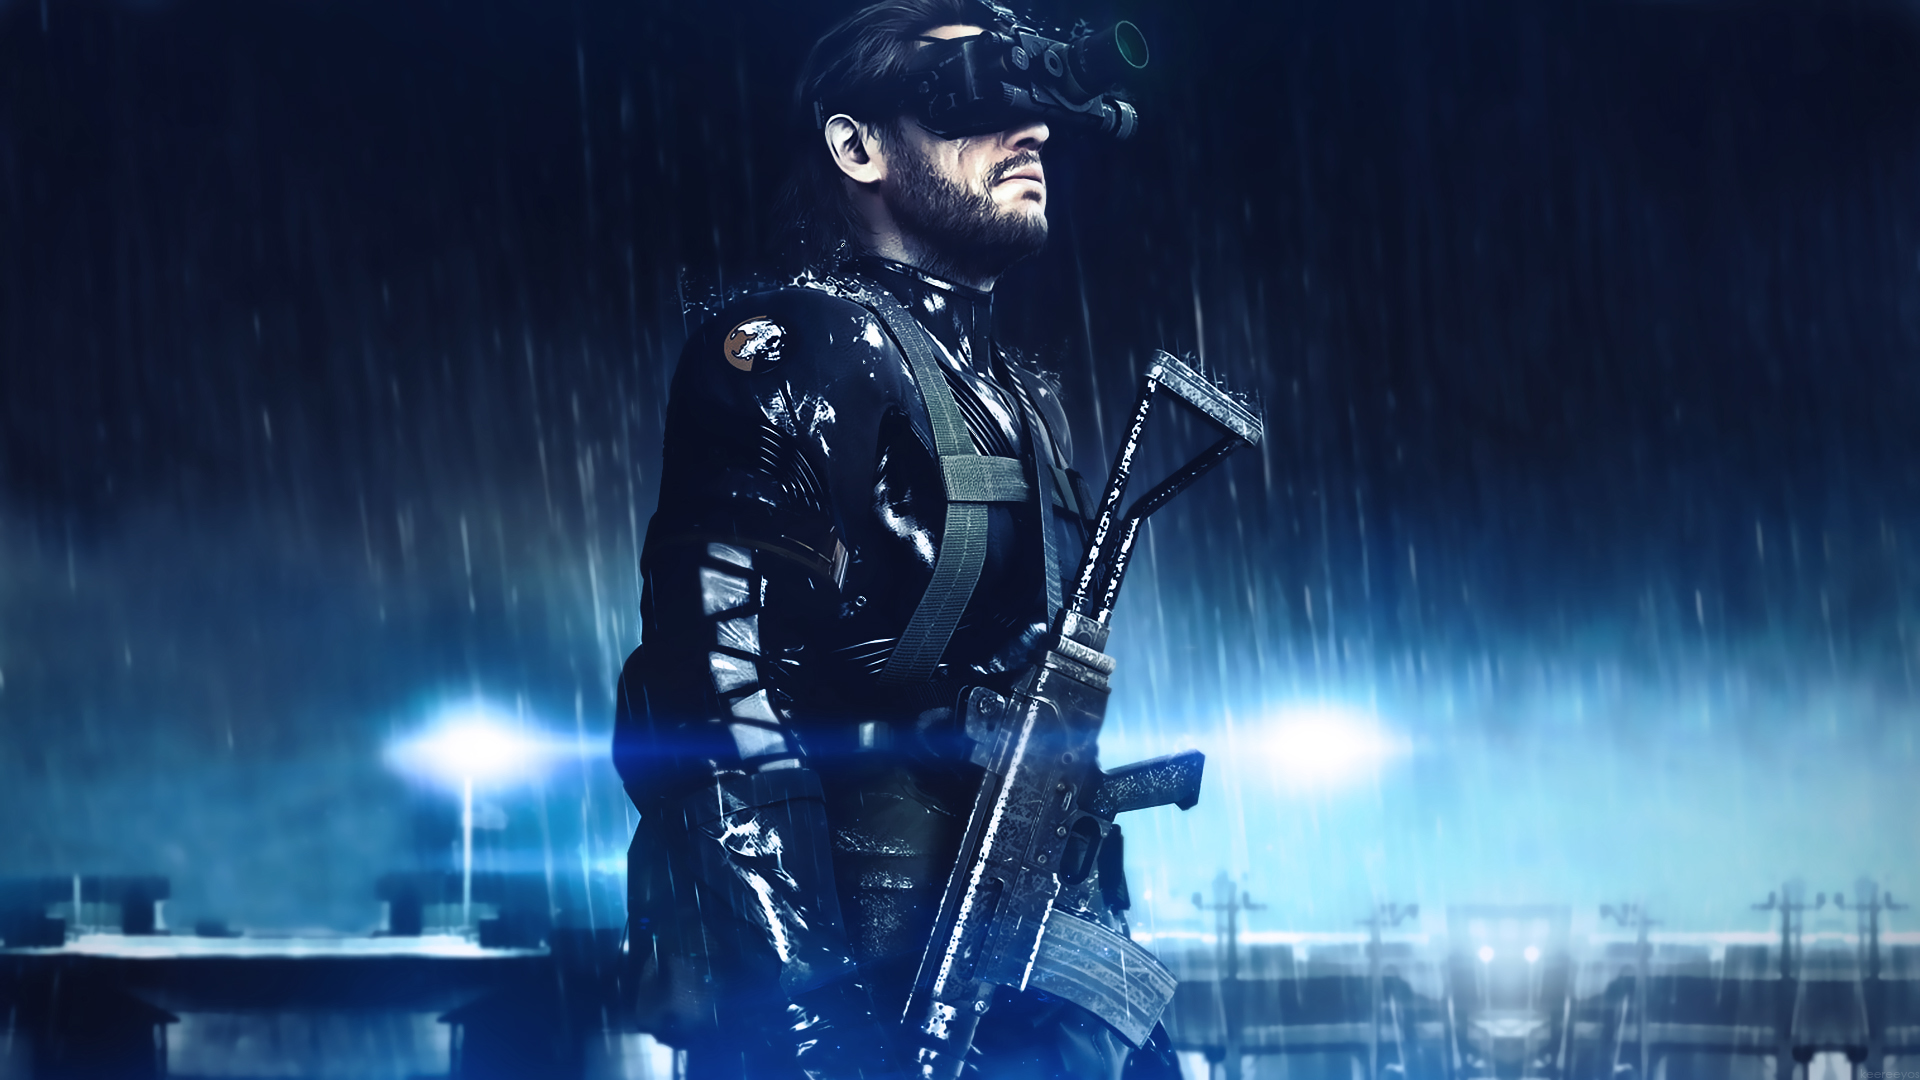 Metal Gear Solid Ground Zeroes Hd Wallpaper By Keereeyos On Deviantart